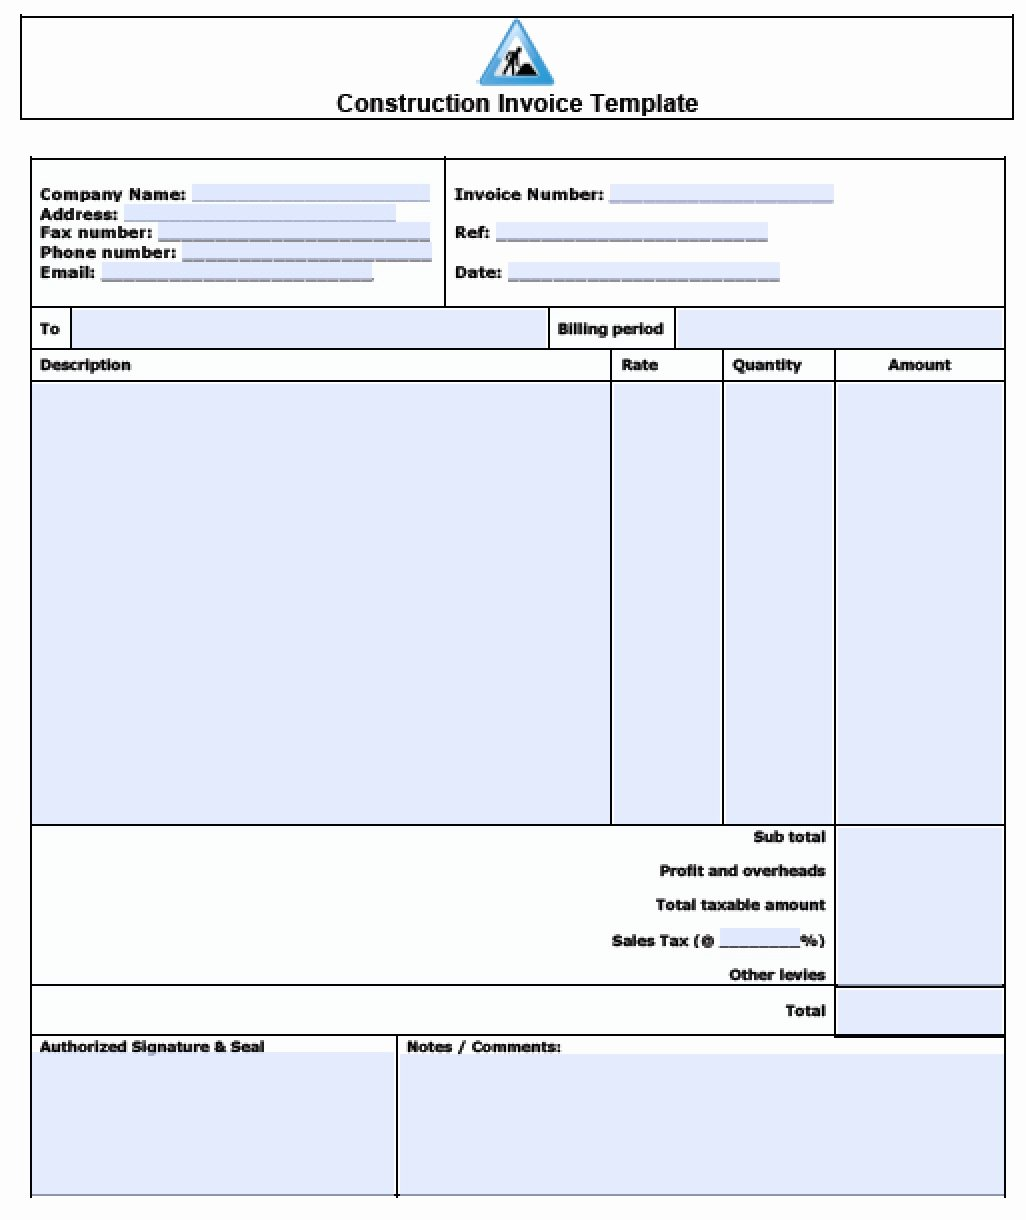 Sample Invoice Template Excel Elegant Construction Invoice Template Excel